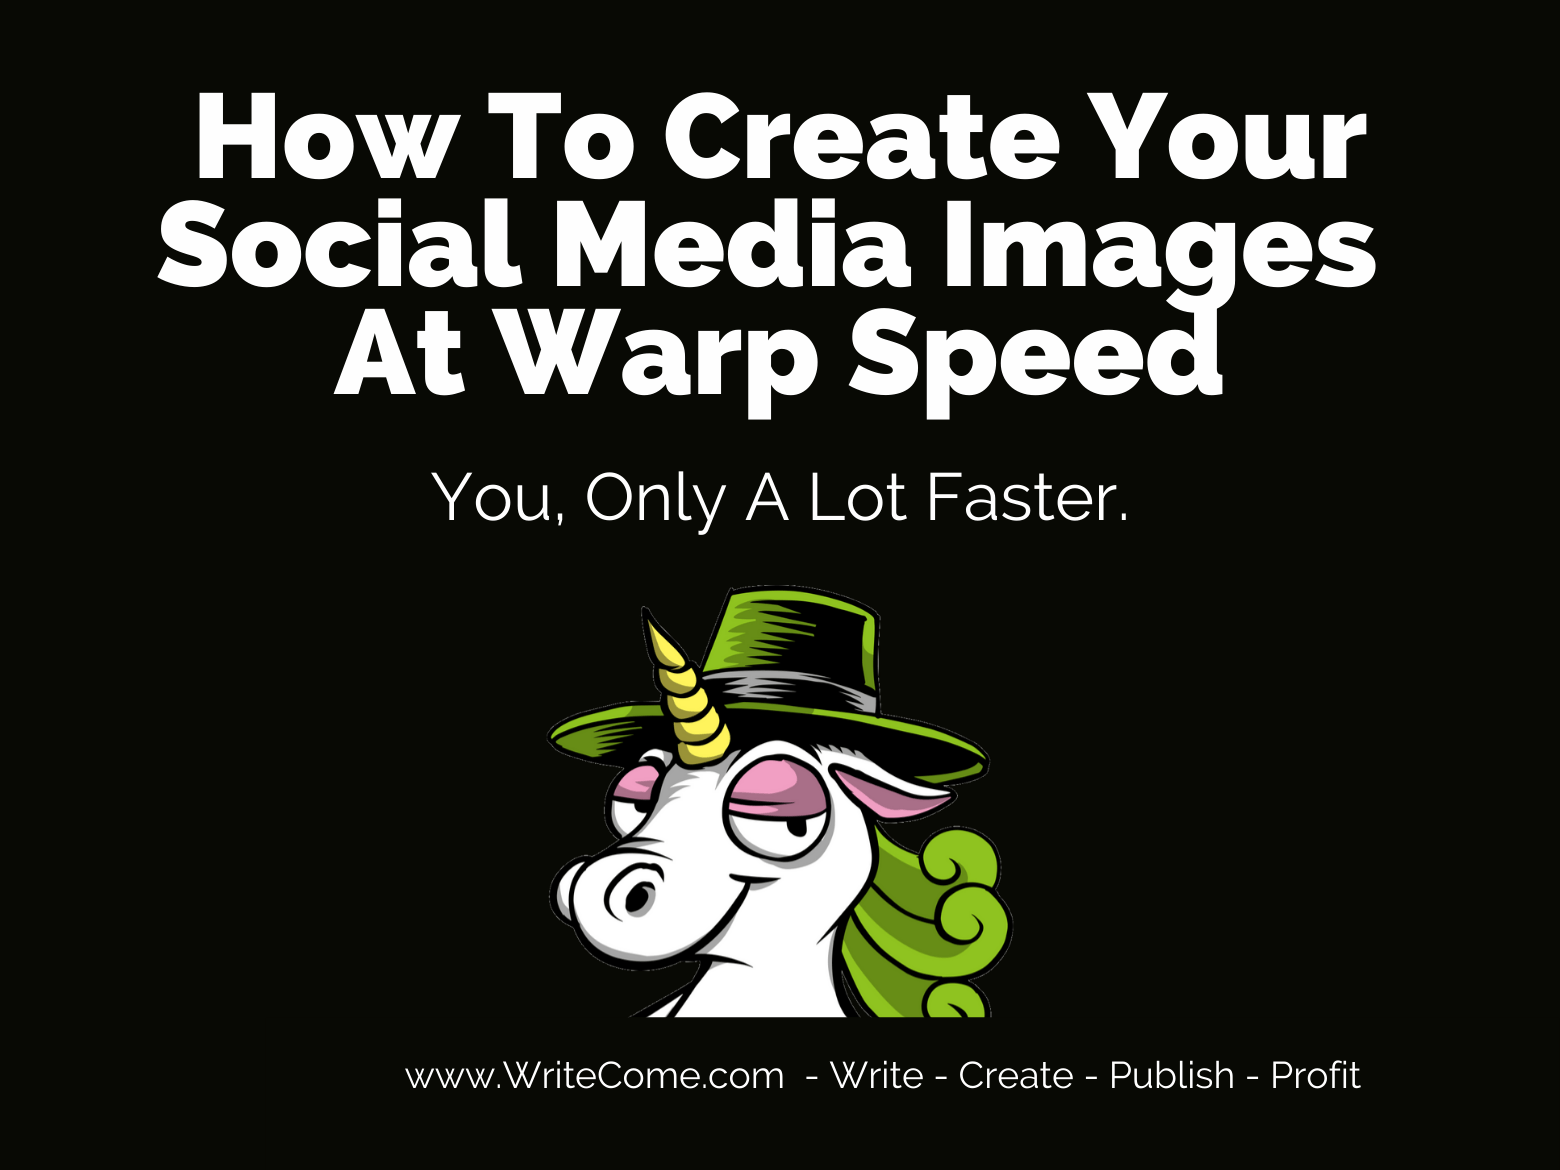 How To Create Your Social Media Images At Warp Speed